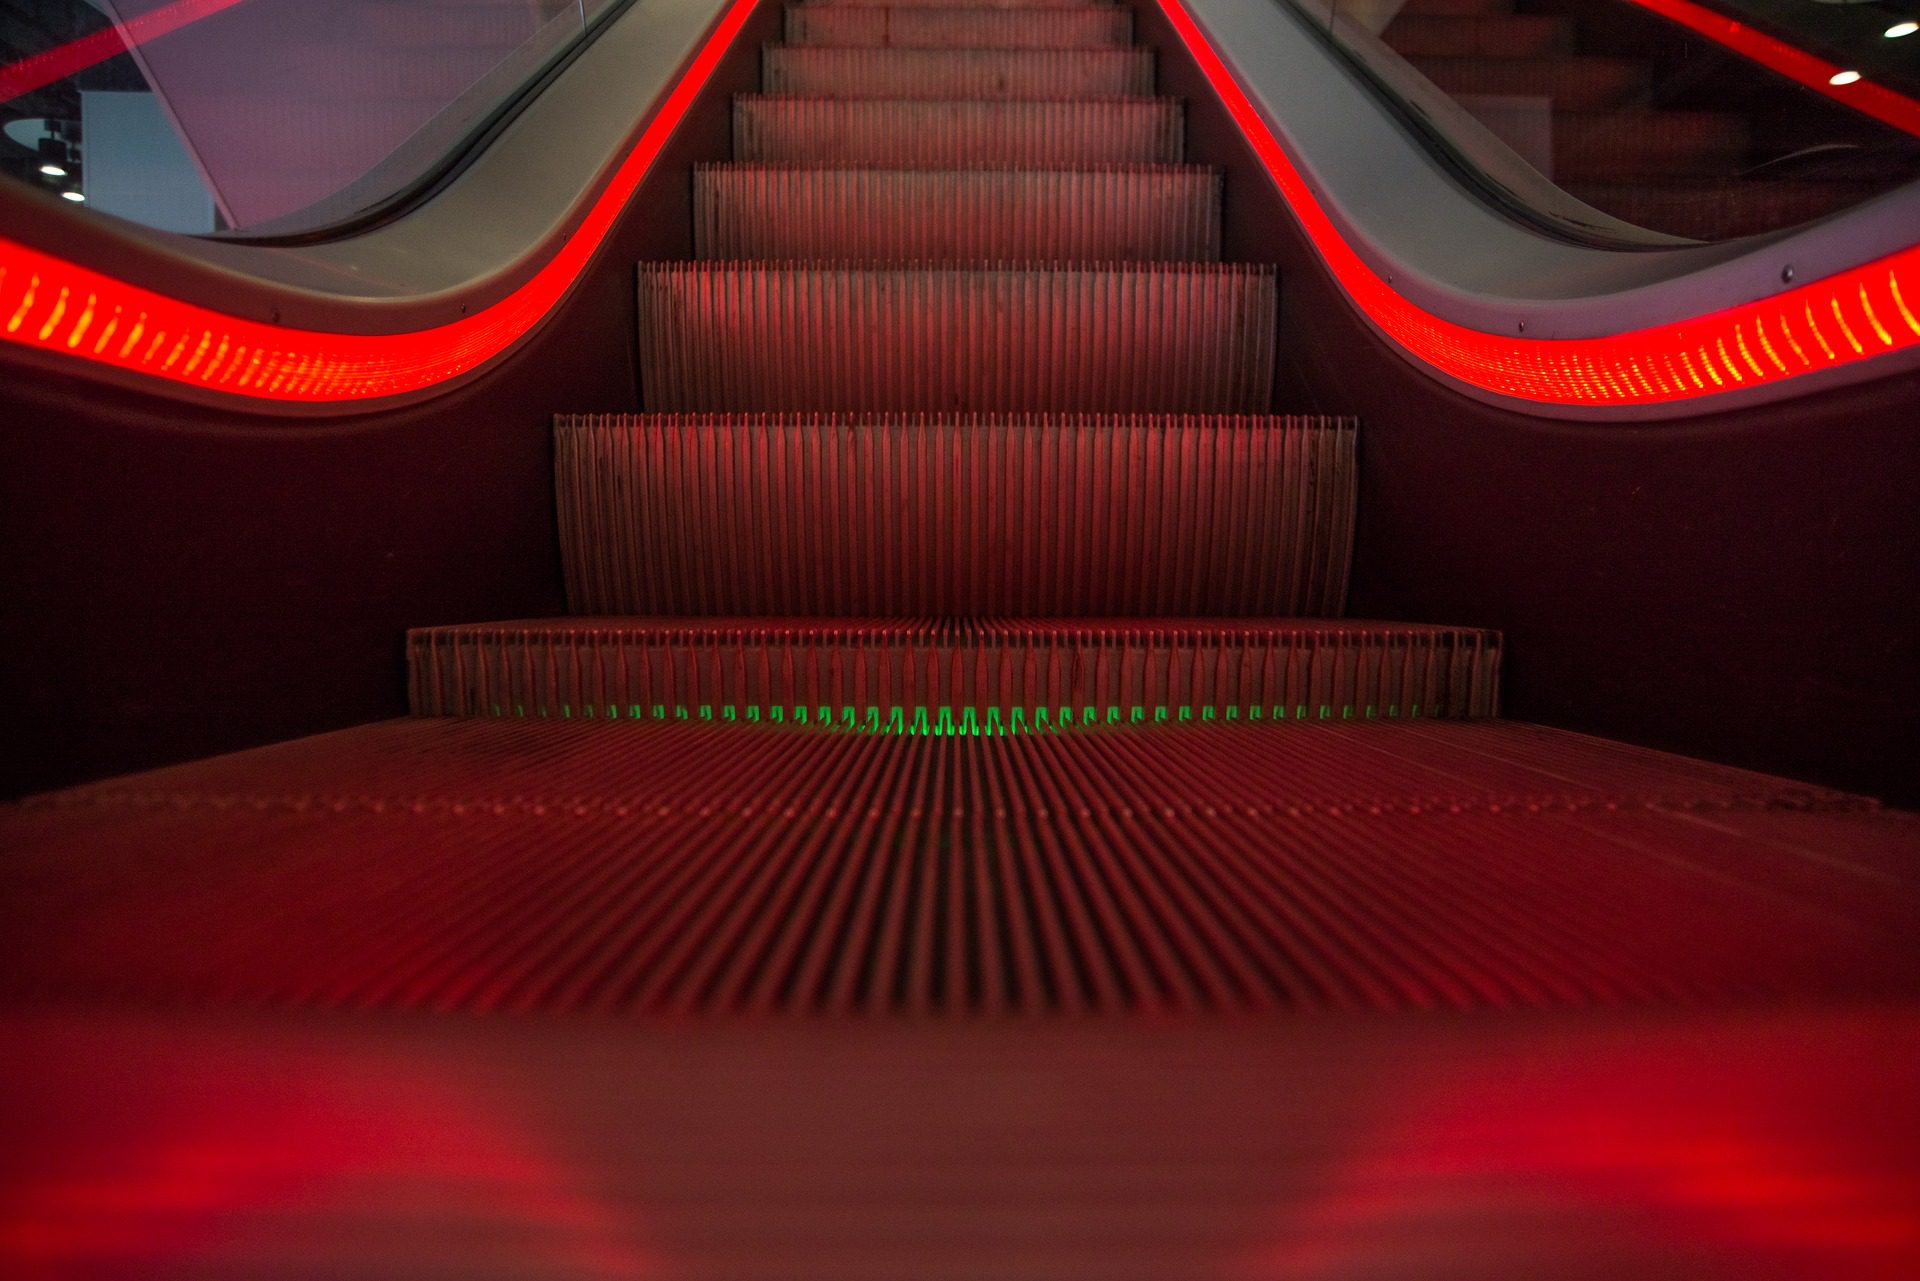 escalator-1746279_1920